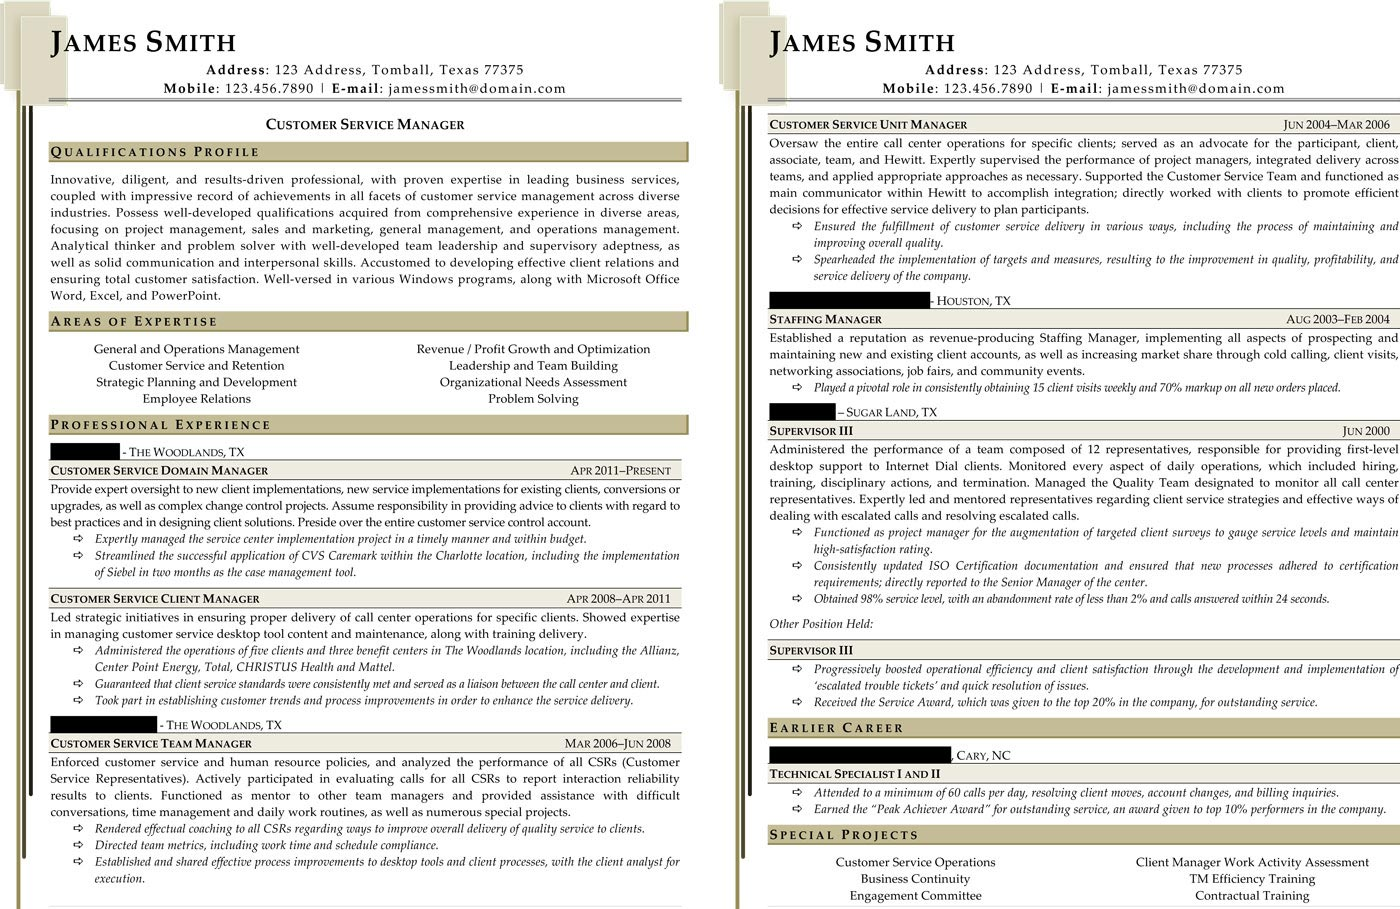 Customer Service Manager Resume  Customer Service Manager Resume Sample